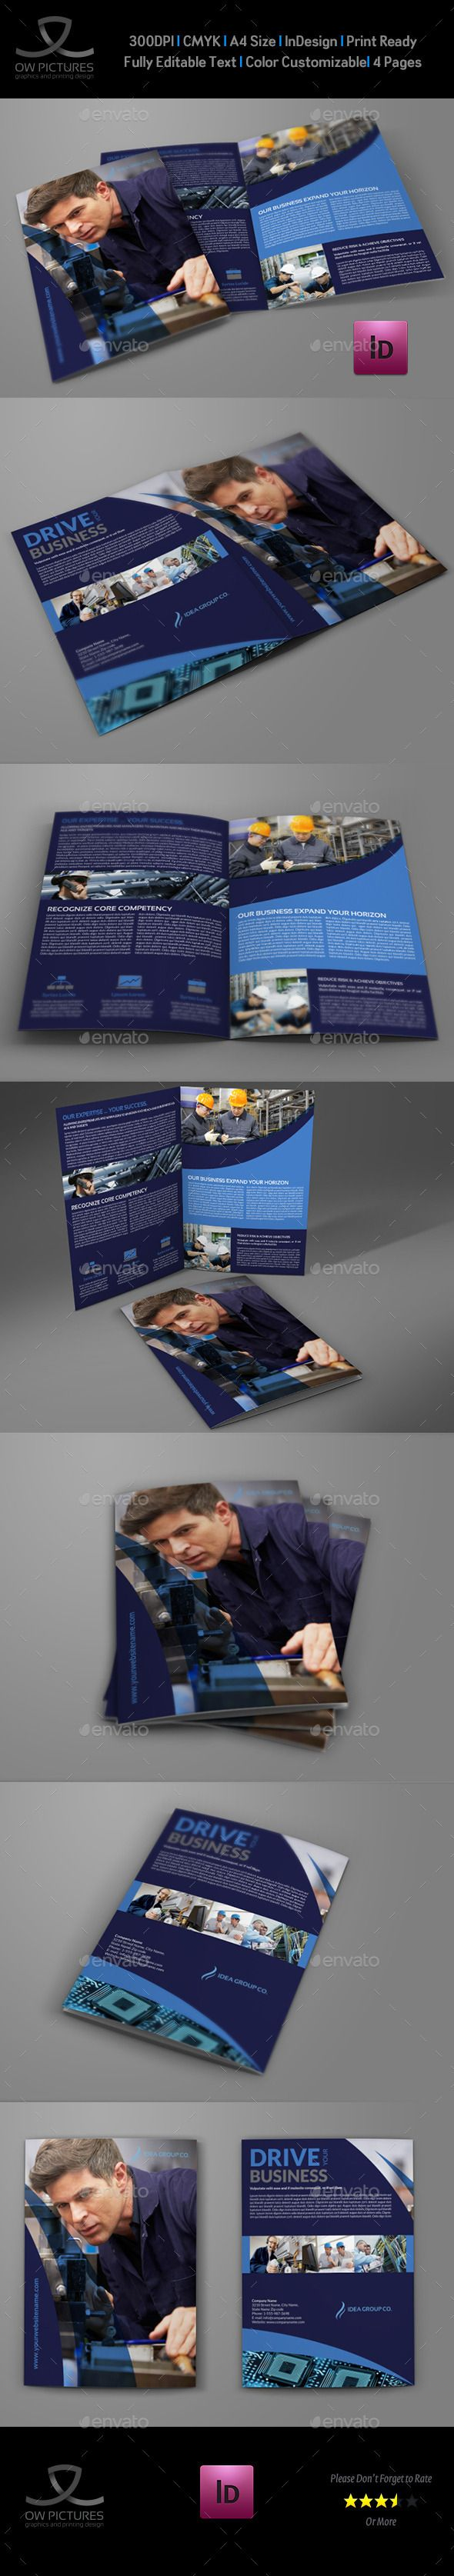 Bi-Fold Brochure Description : Industrial Company Brochure Bi-Fold Template that is super simple to edit and customize with yo